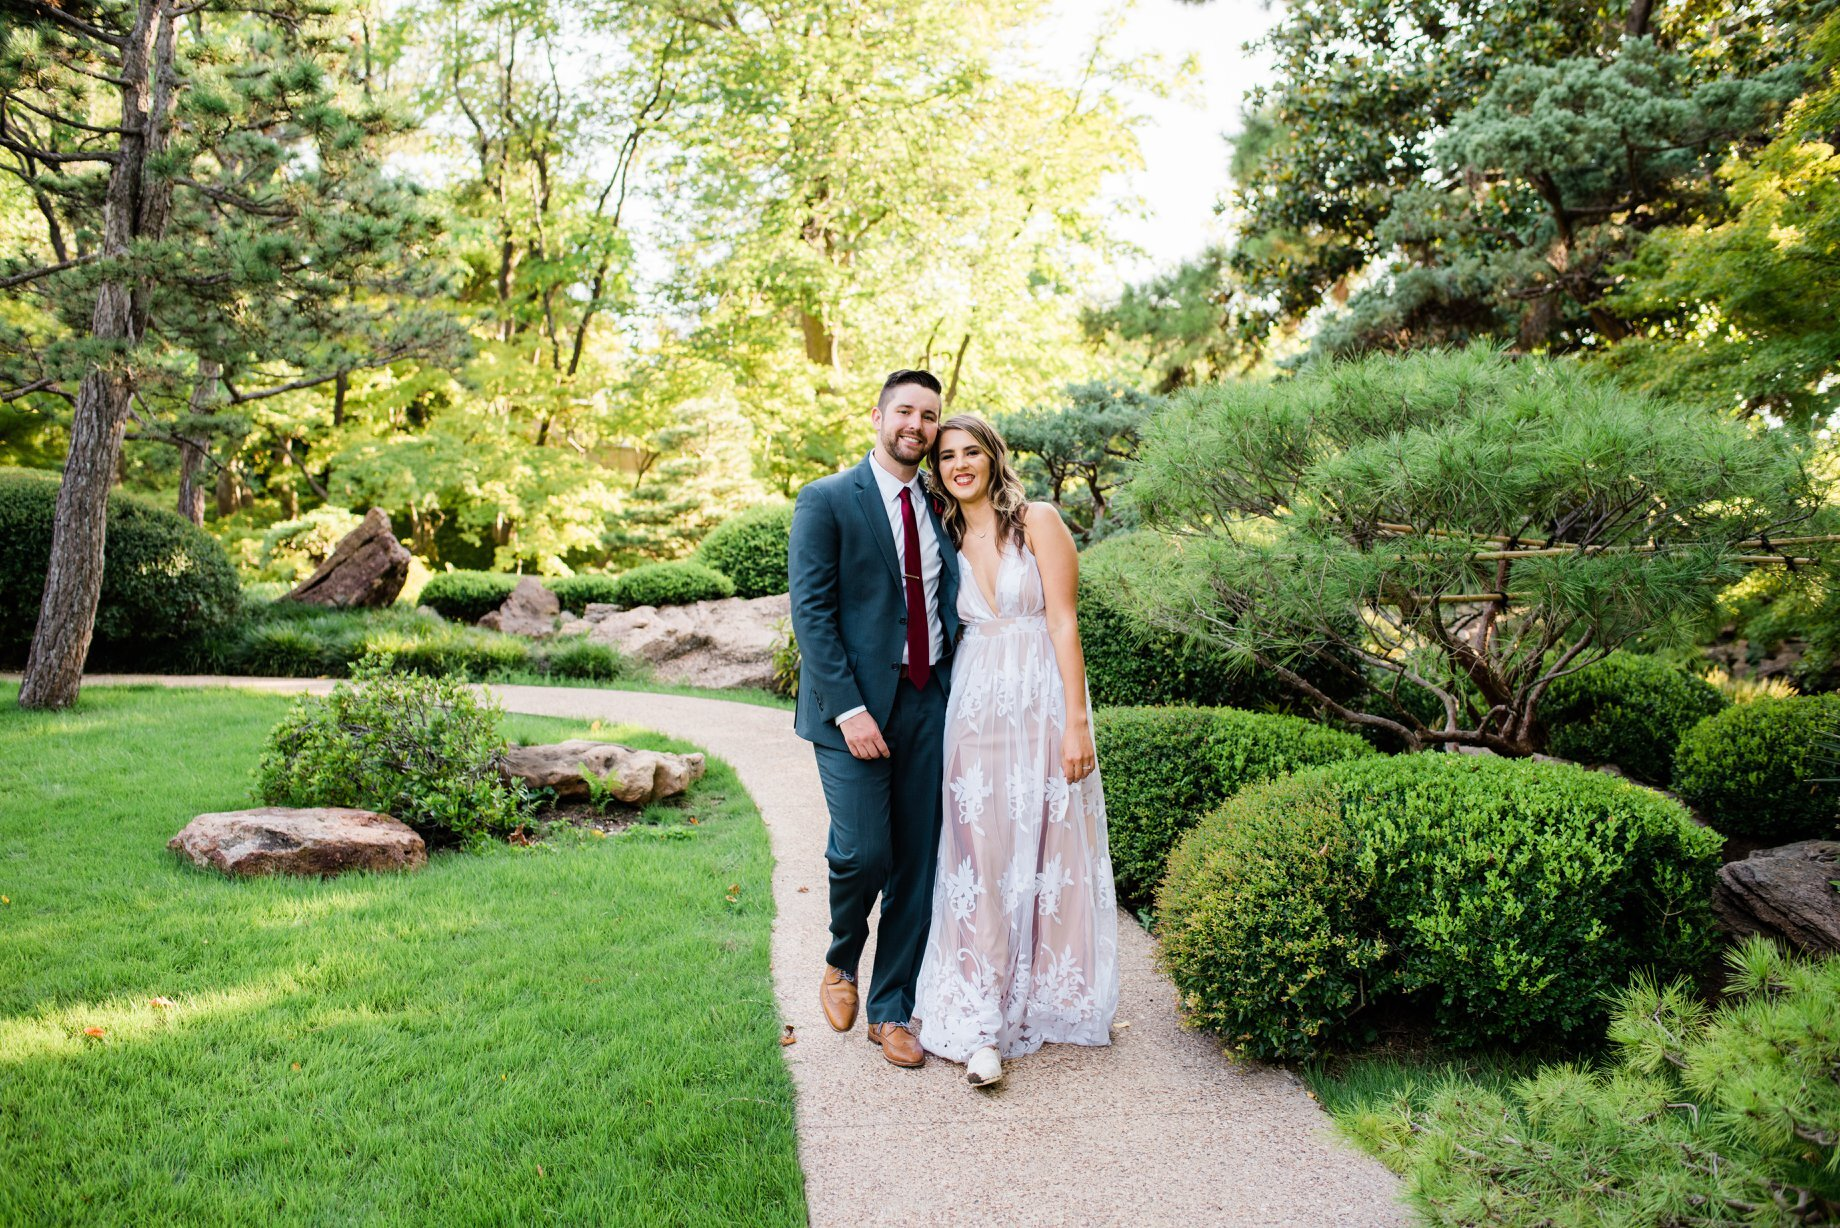 """Ashley LaSerra - """"I don't know where to start besides that Spencer is literally the best! I emailed him last second (about a week and a half before) about capturing our small ceremony at the botanical gardens in Fort Worth. I got lucky that he was available and I am so glad that he was. He is very responsive and cares about what you're looking for in your pictures. He makes you feel relaxed and is a natural behind the camera. It's reassuring to know I will forever have a photographer here in Texas! His prices are absolutely do-able and he had my pictures back quick! I'm pretty picky about pictures and he exceeded all expectations. I can't thank him enough!!!"""""""